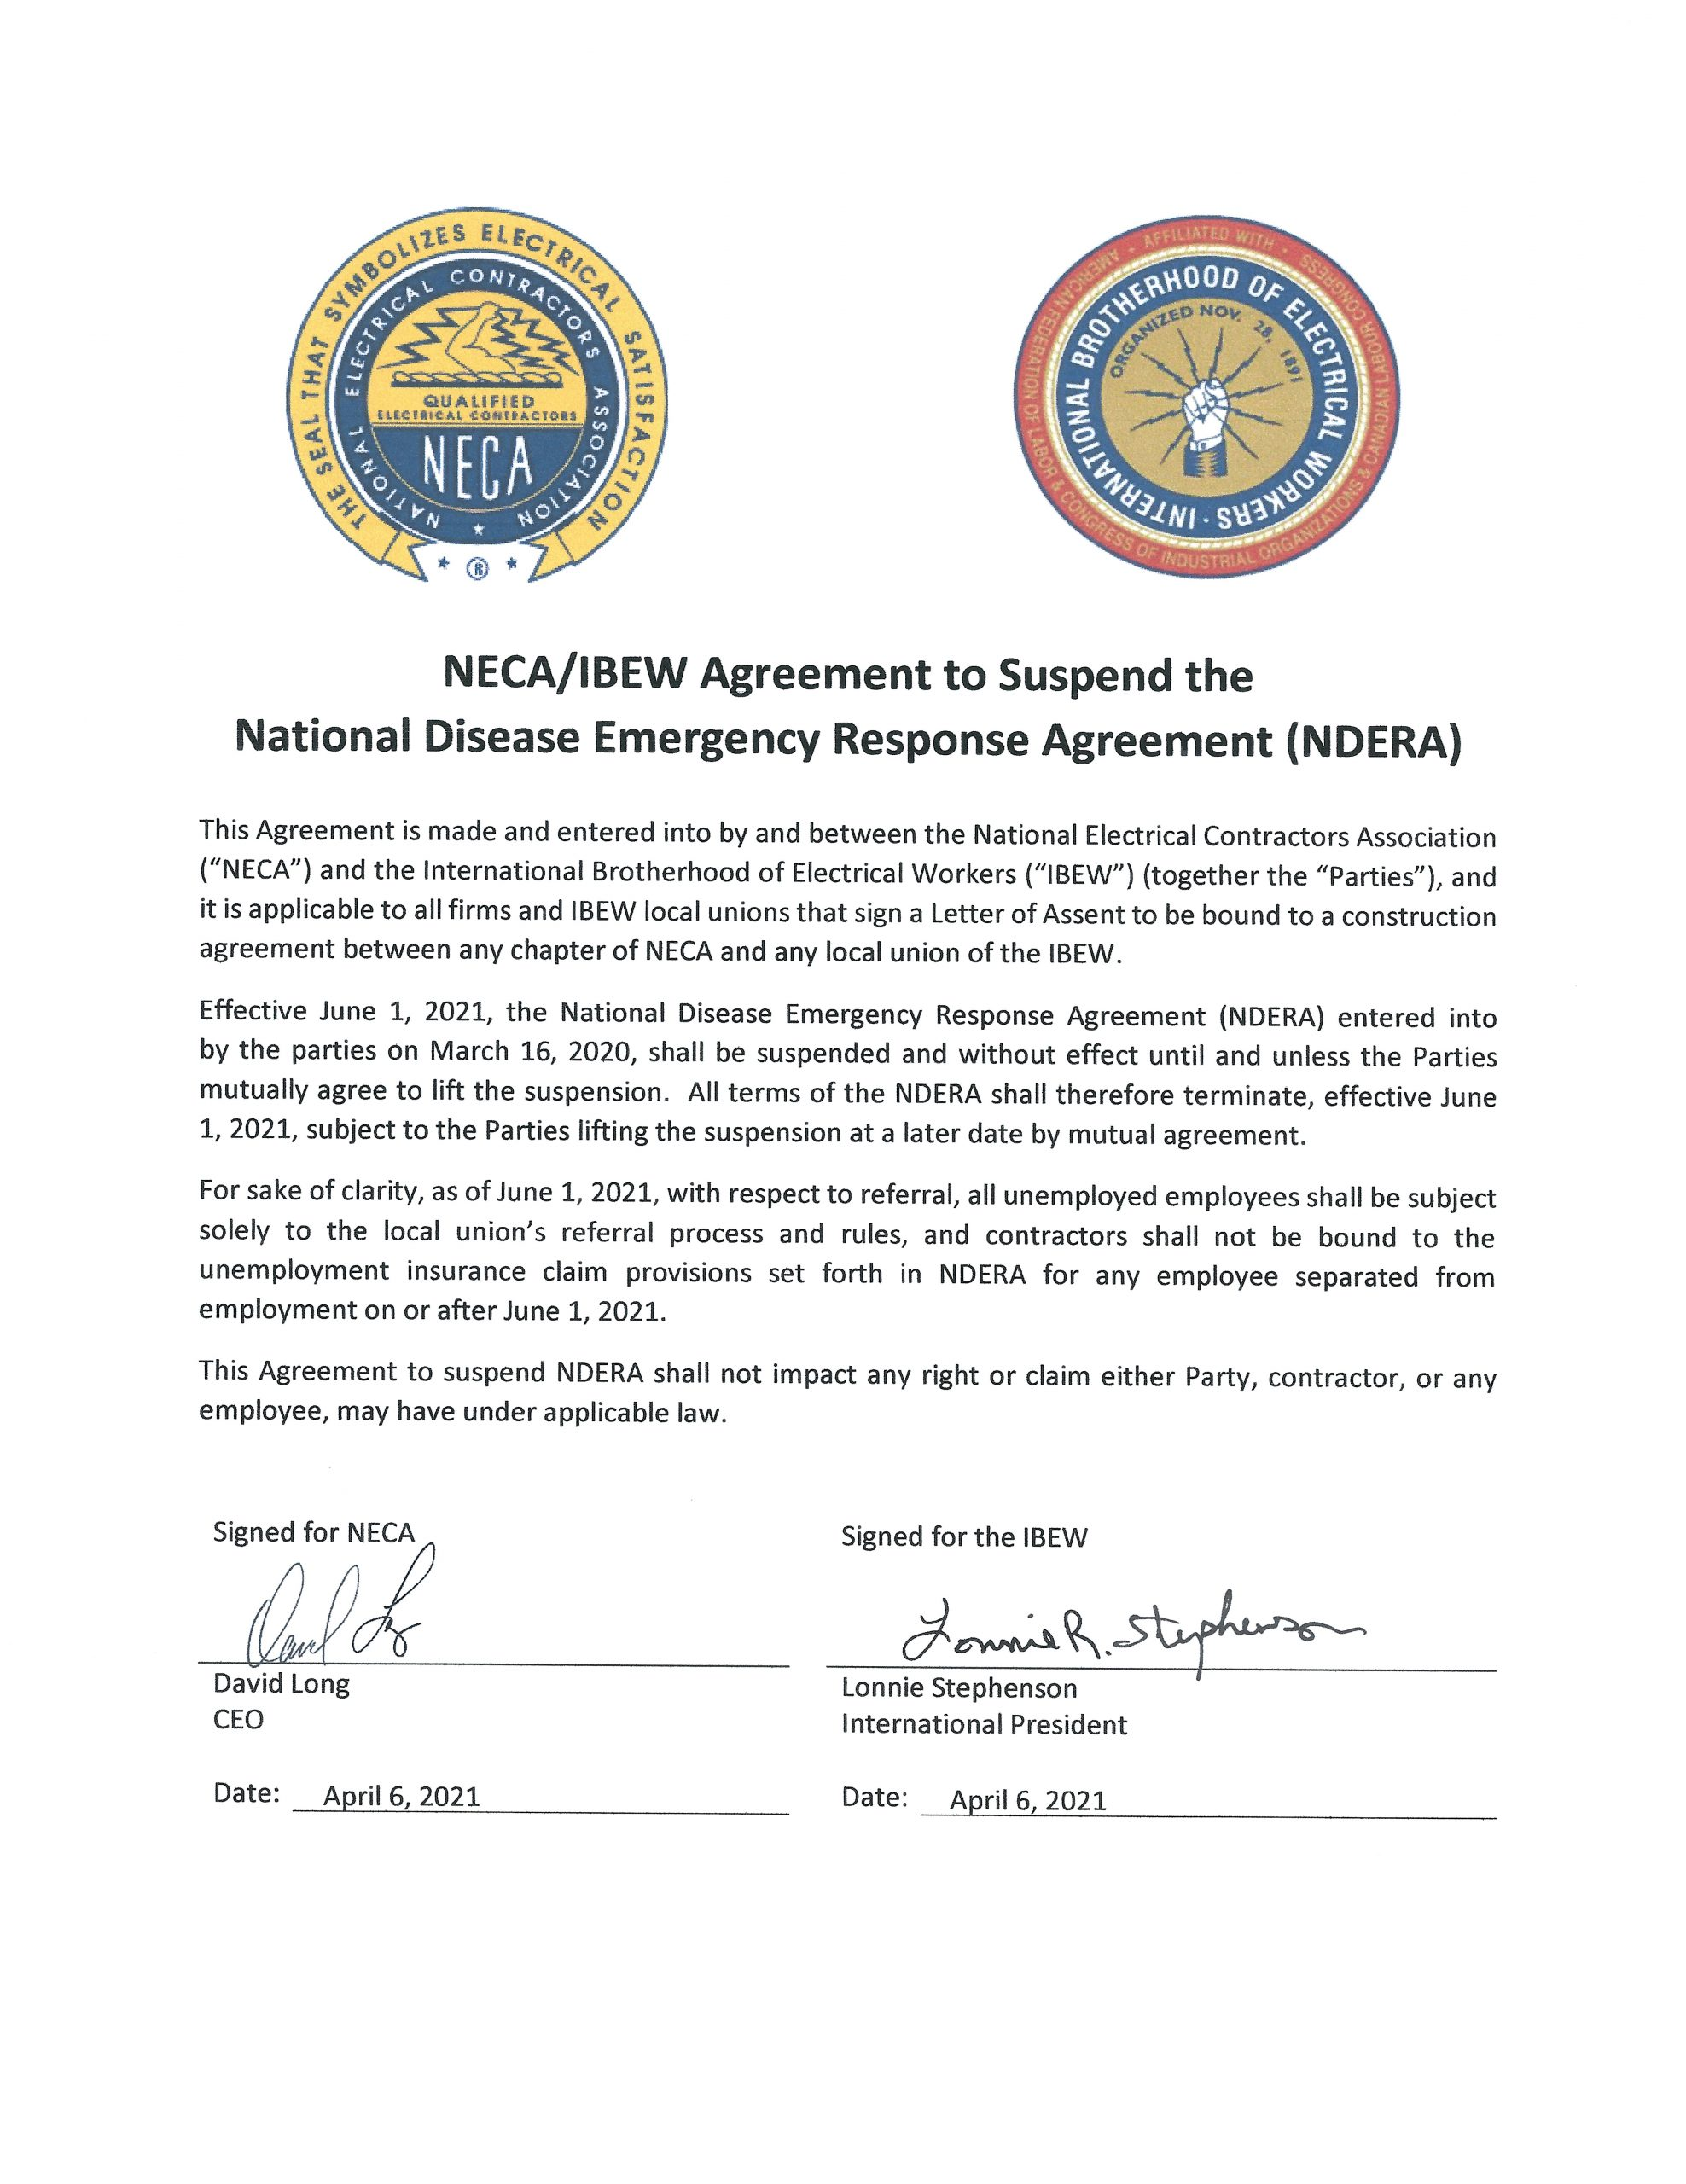 <br /><strong>National Disease Emergency Response Agreement (NDERA) will be suspended June 1, 2021